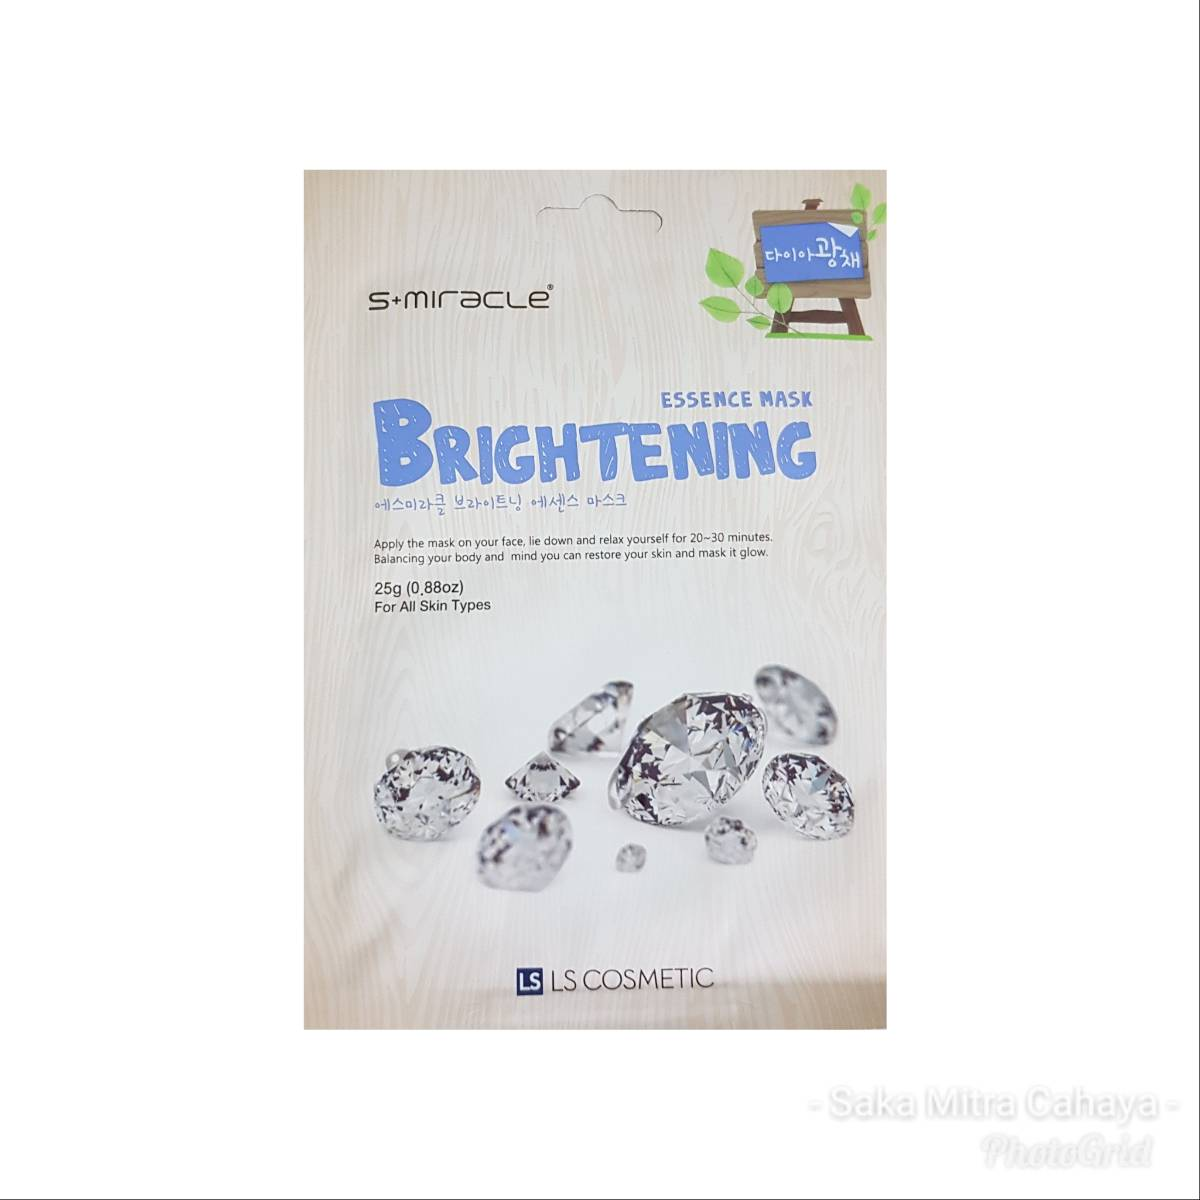 Masker Wajah Korea Brightening - S+miracle Brightening Essence Mask